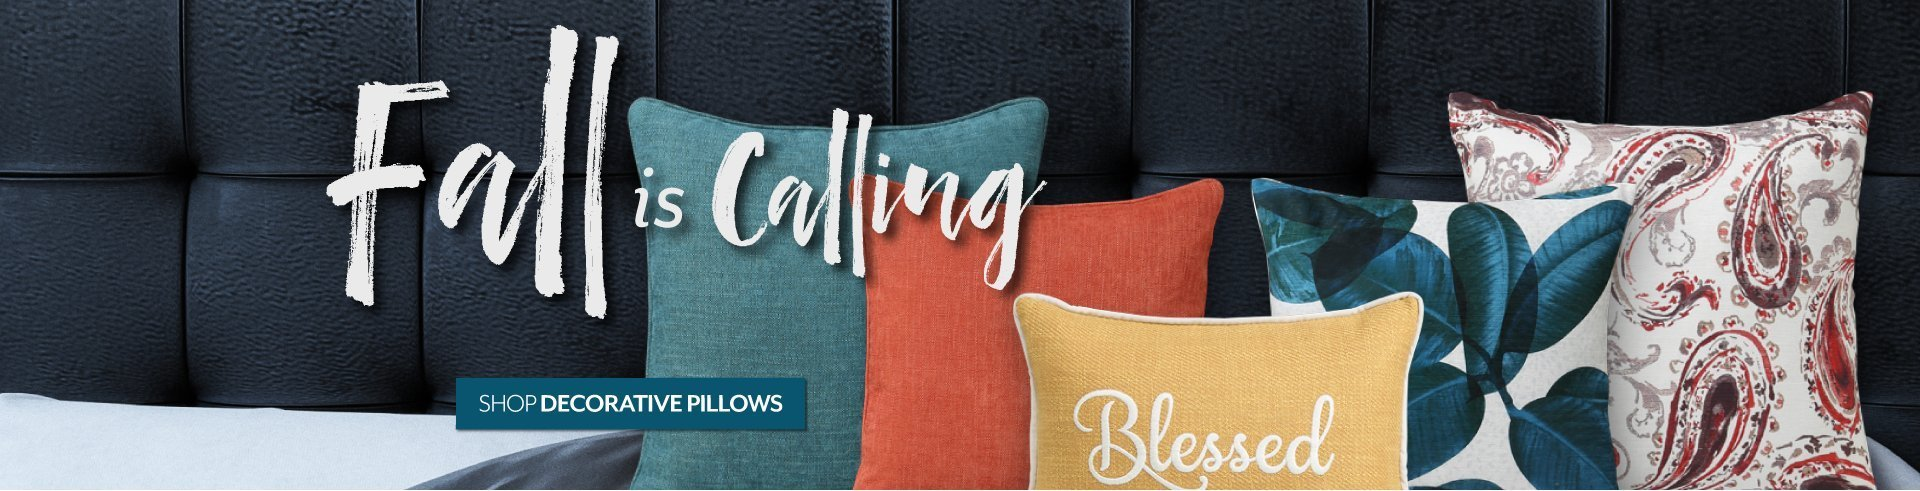 Fall is Calling - Shop Decorative Pillows at Burkes Outlet